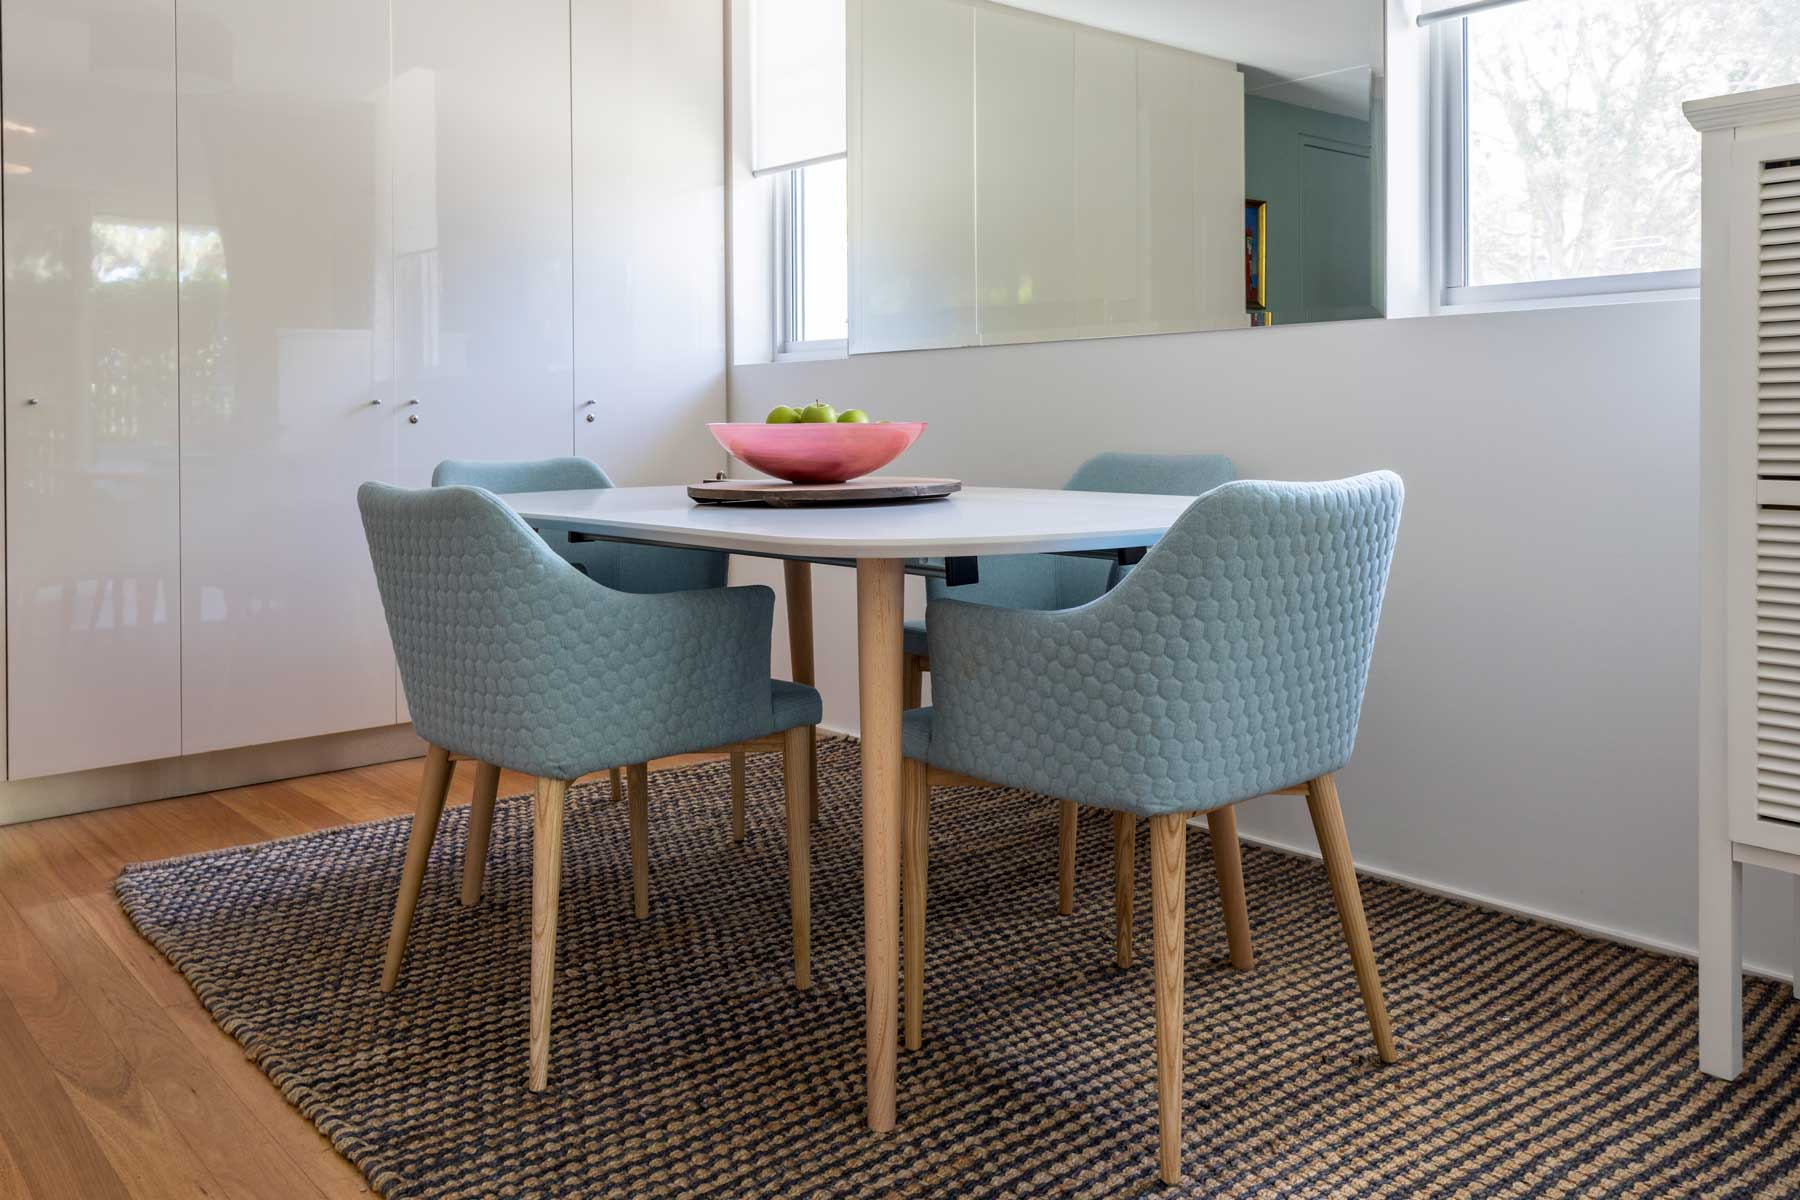 Robyn's vibrant beach apartment - after - dining table